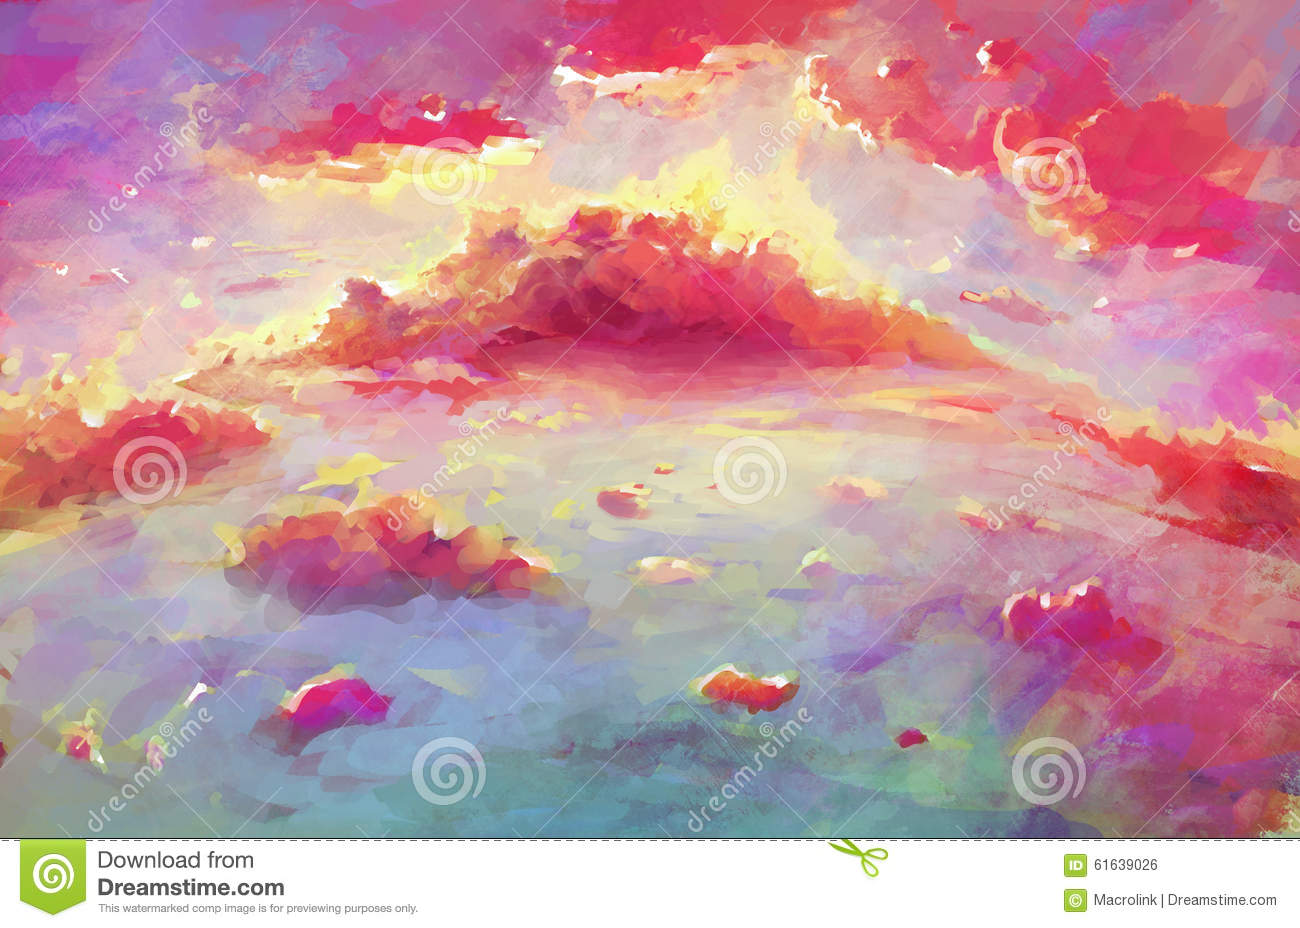 Colorful Landscape Illustration of Pink Clouds. Fantasy Wallpaper of Scenic Sunset.